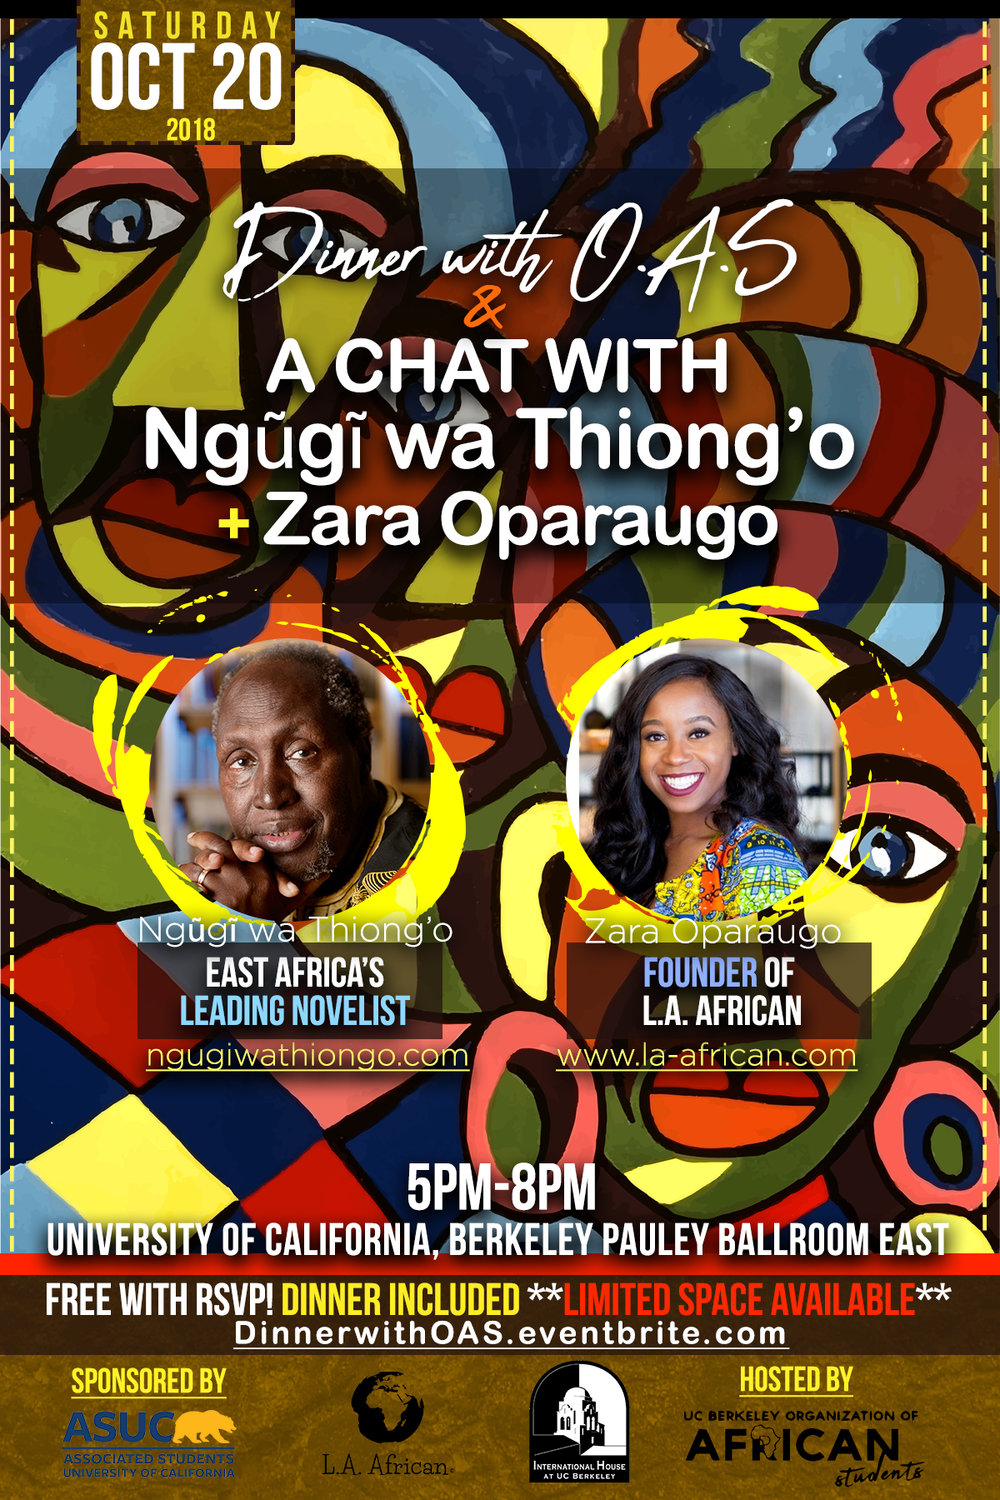 A Chat With Ngugi Flyer 2018.jpg